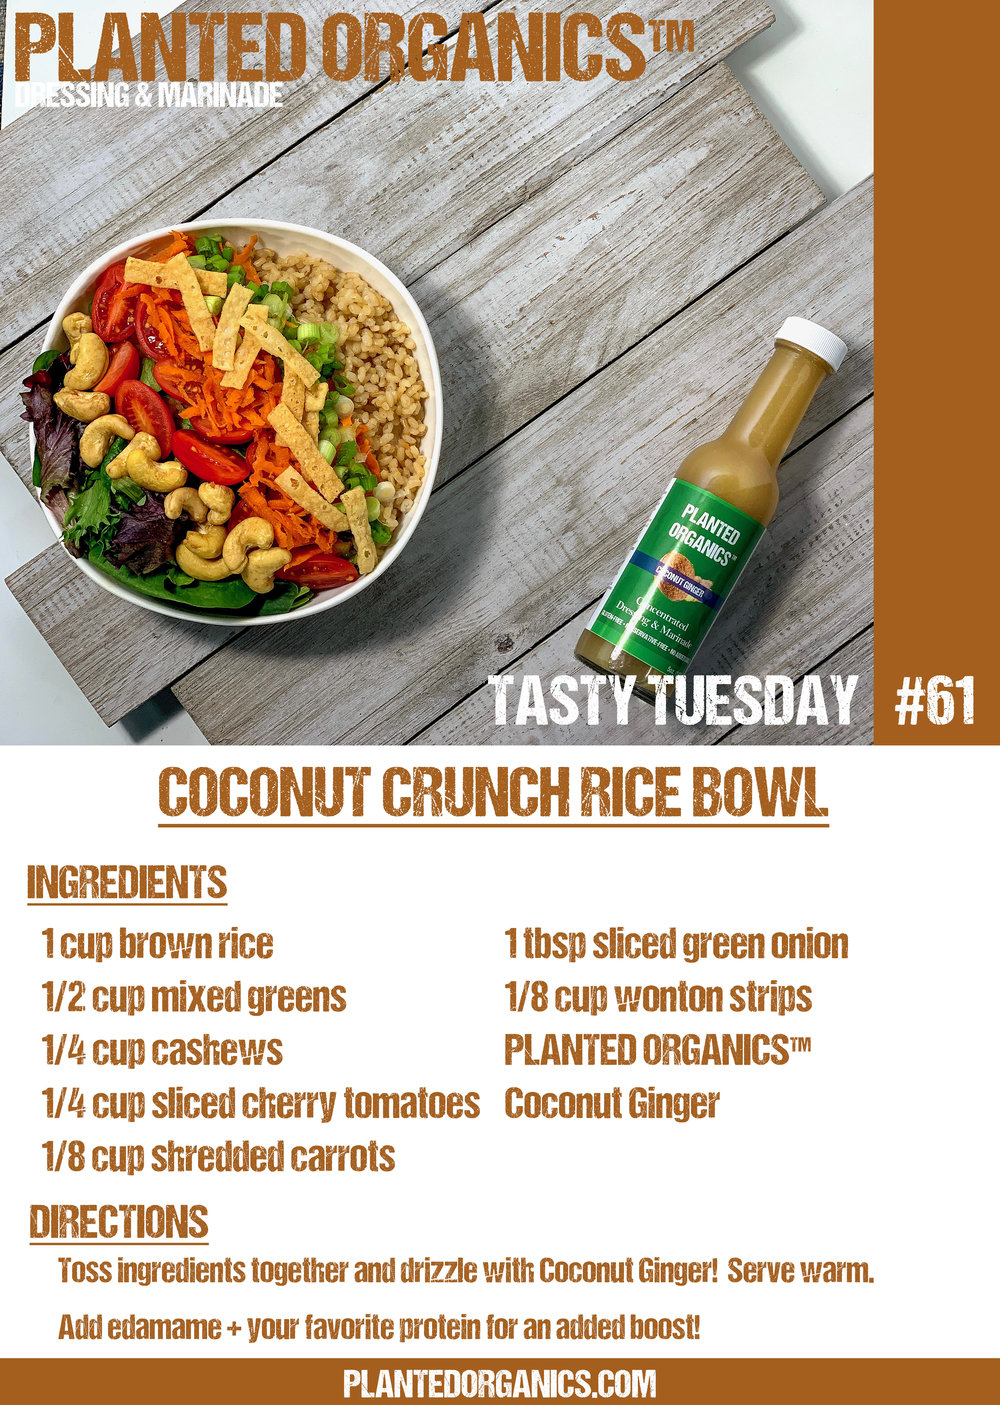 Tasty Tuesday #61! - This rice bowl is sure to impress! Featuring our Coconut Ginger its tough to beat!